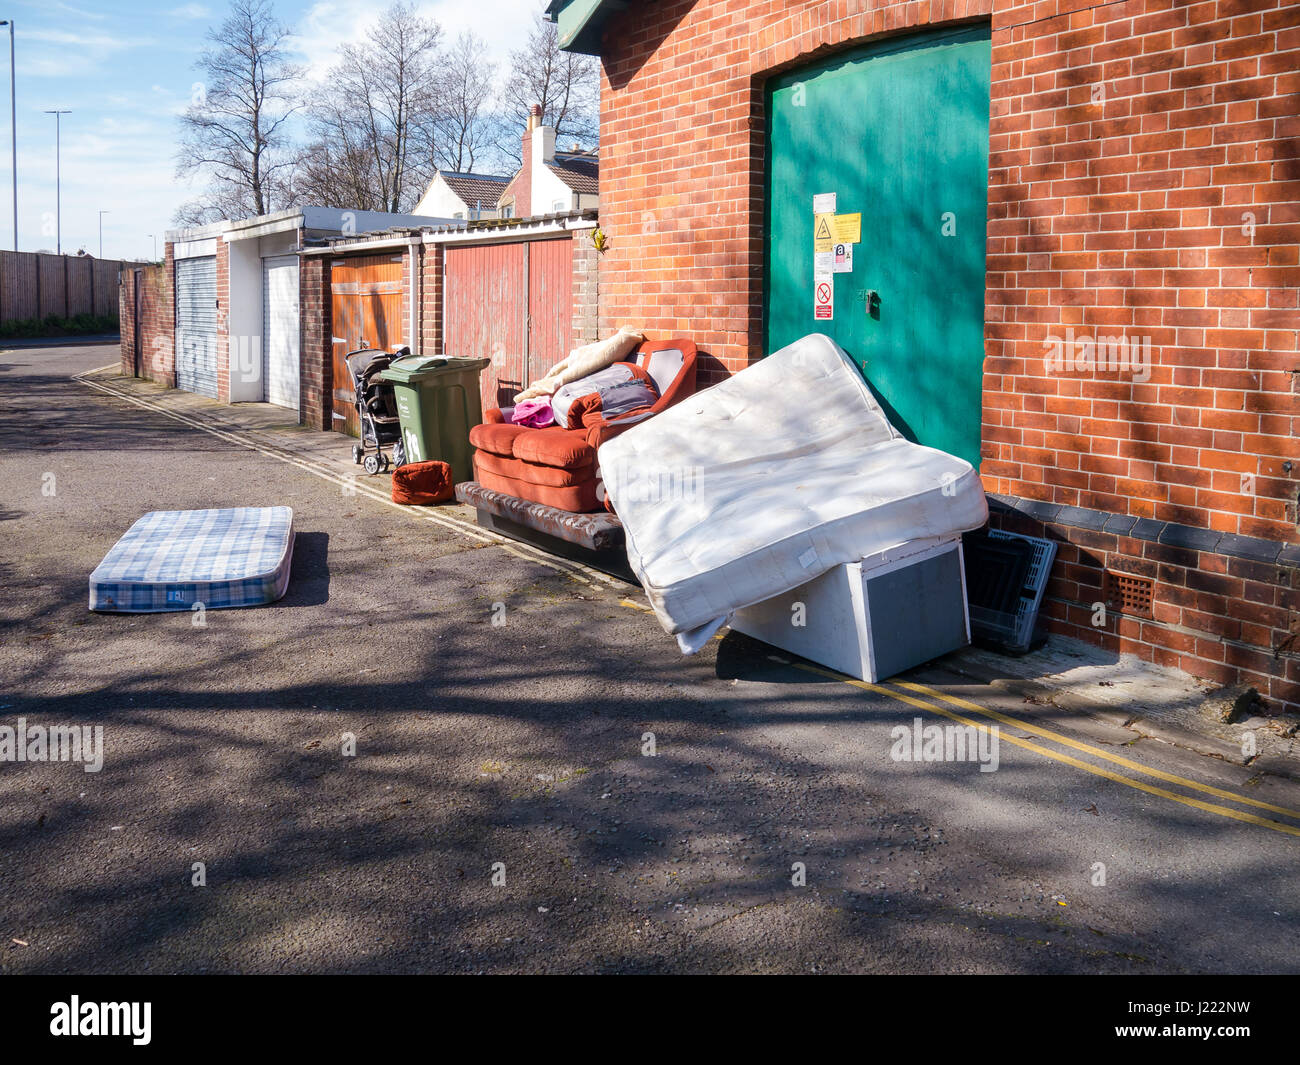 Fly tipping - Household waste and rubbish dumped at a fly tip in an urban area - Stock Image